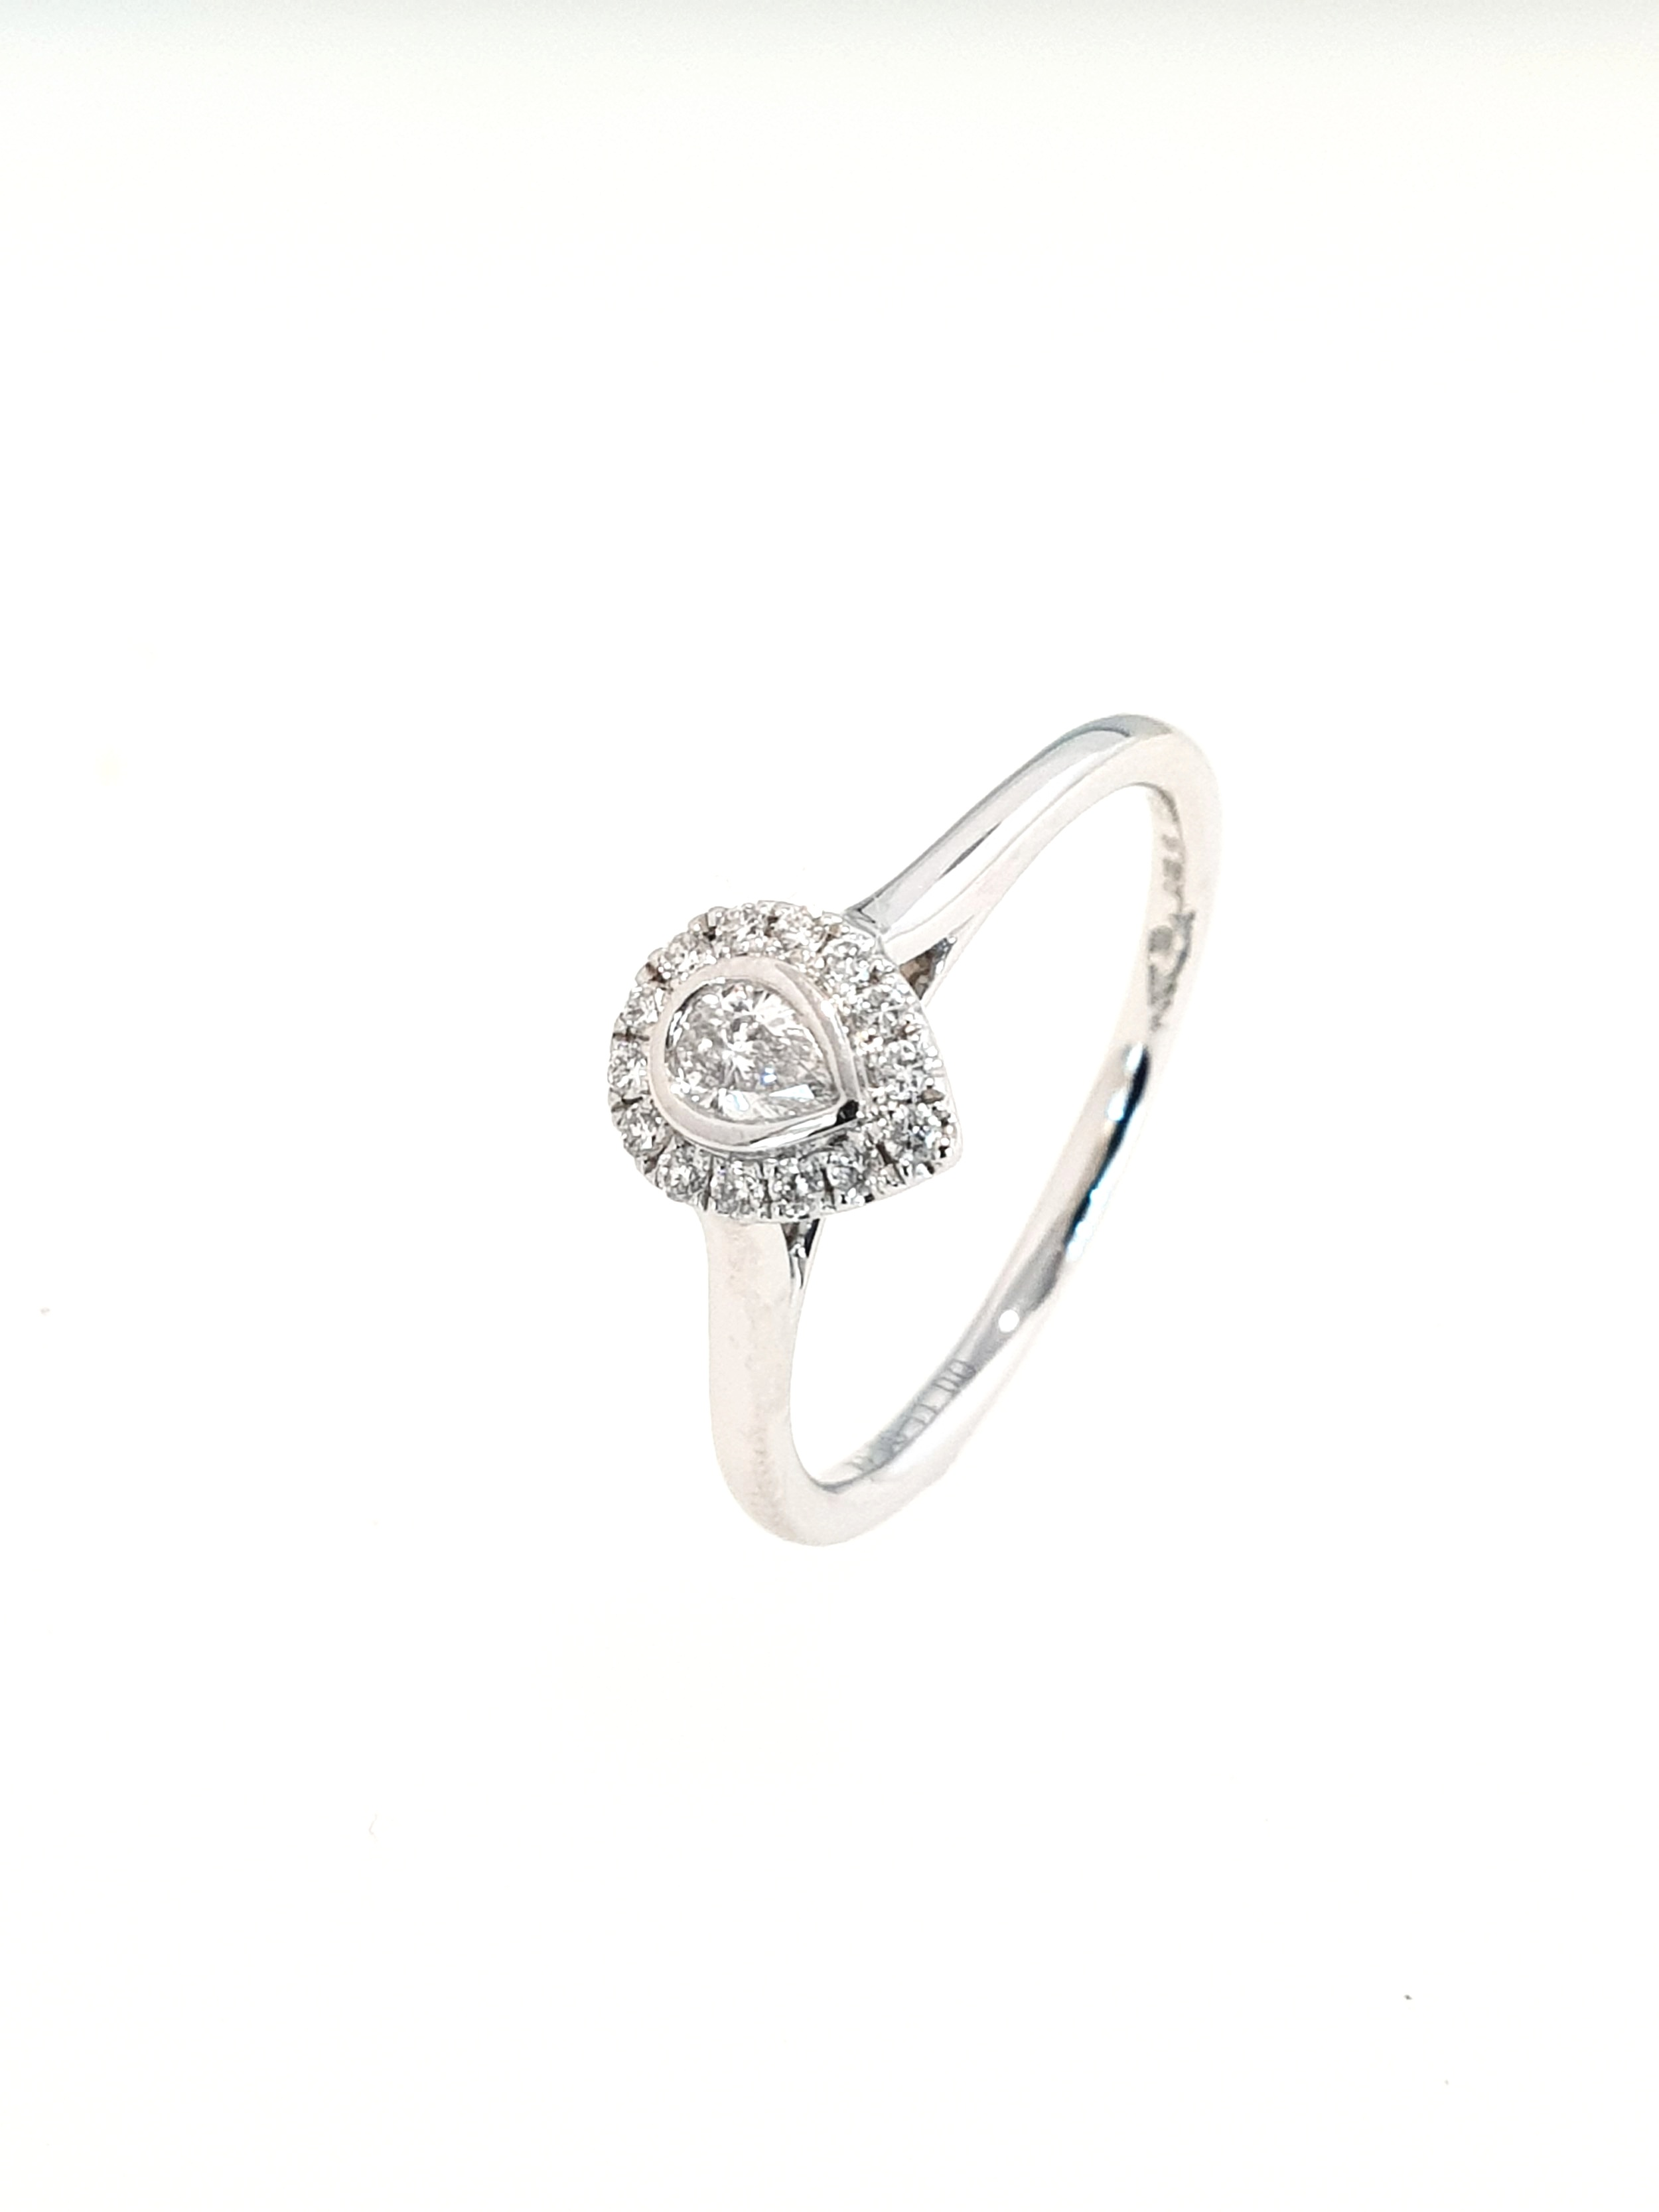 Platinum Pear Shaped Diamond Halo Ring  G, Si1  Stock Code: N8941  £1550